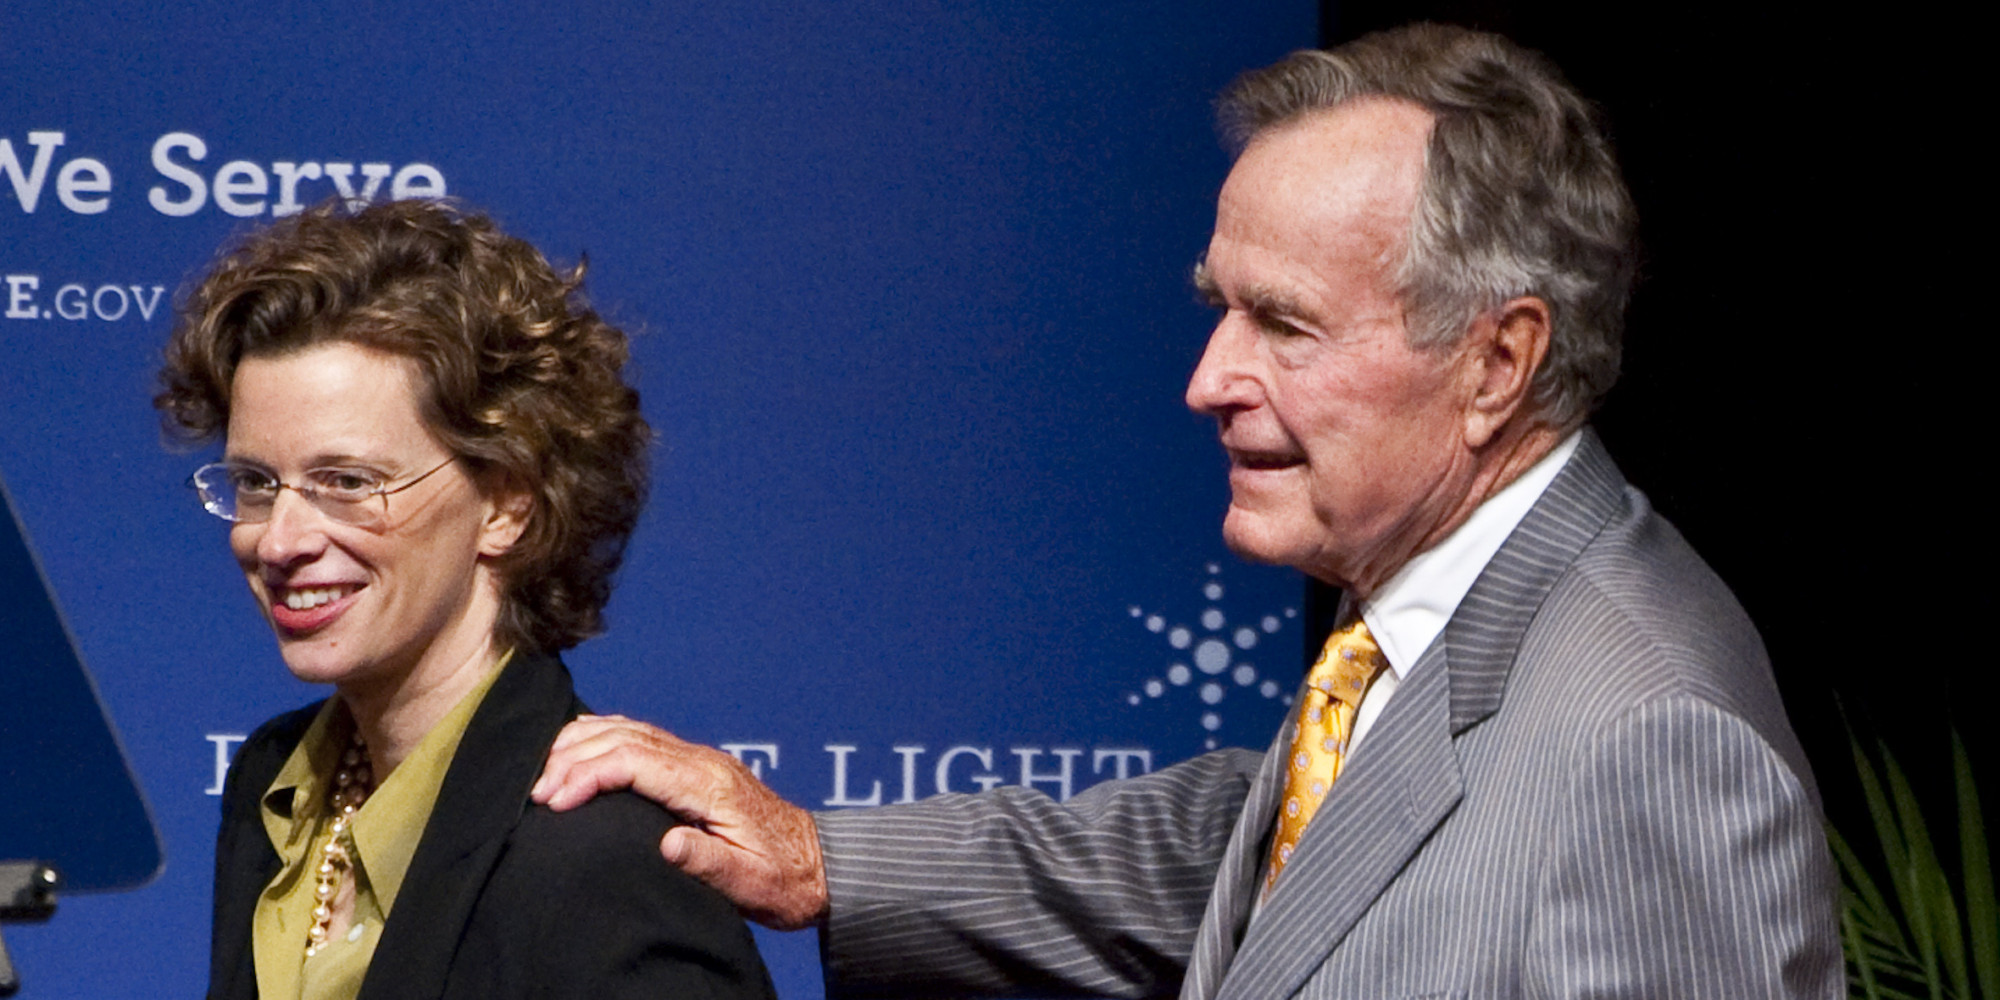 Obama Holds Forum On Community Service Hosted By George H.W. Bush